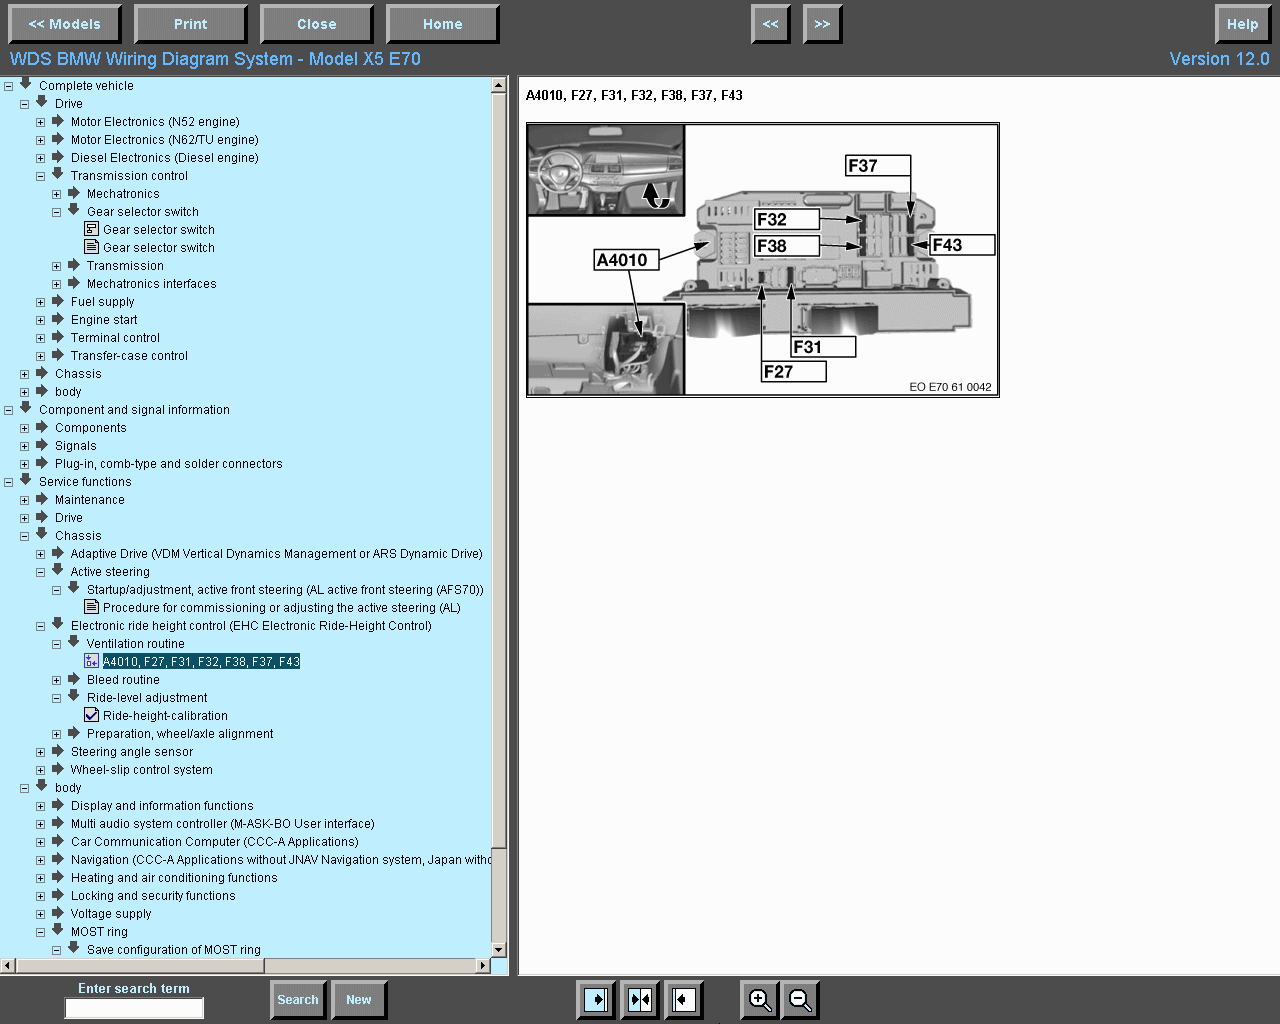 руководство по ремонту авто bmw wds - bmw wiring diagram ... bmw wiring diagram system v12 3 #10